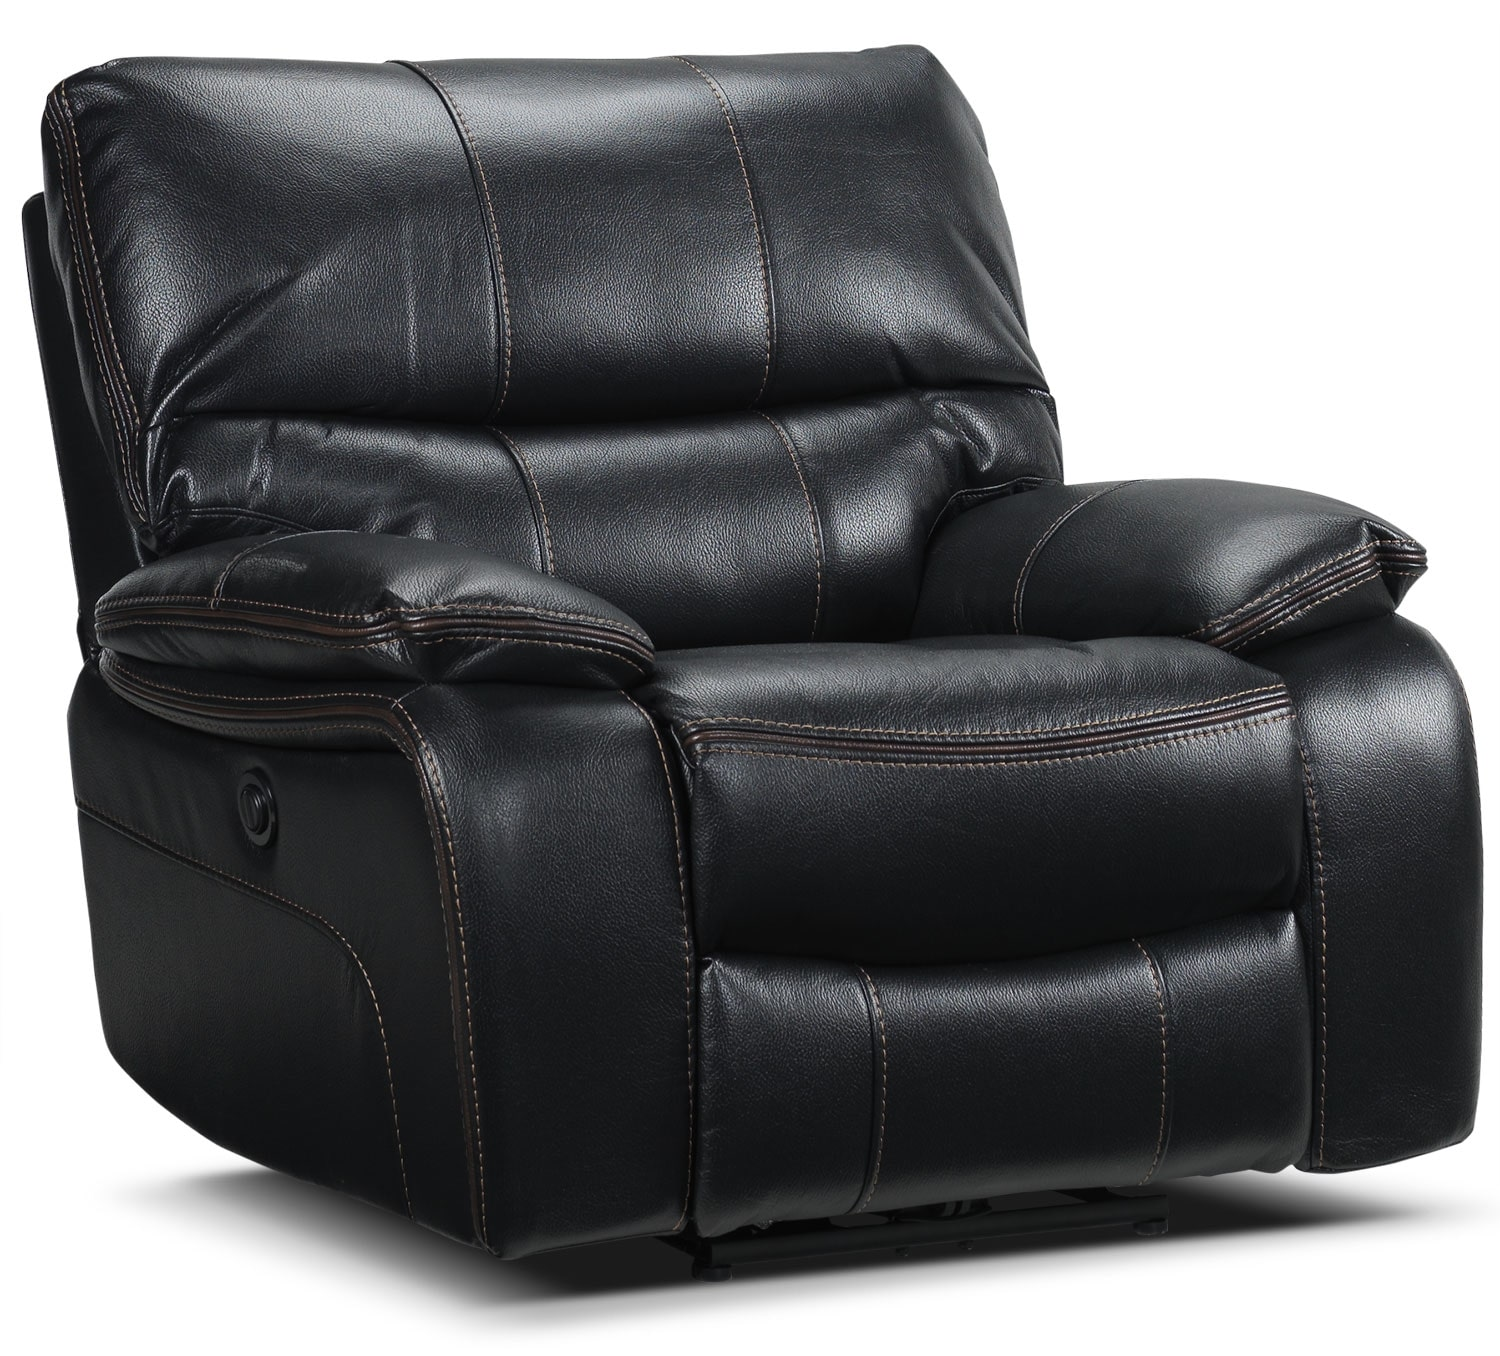 Living Room Furniture - Mahon Power Recliner - Black